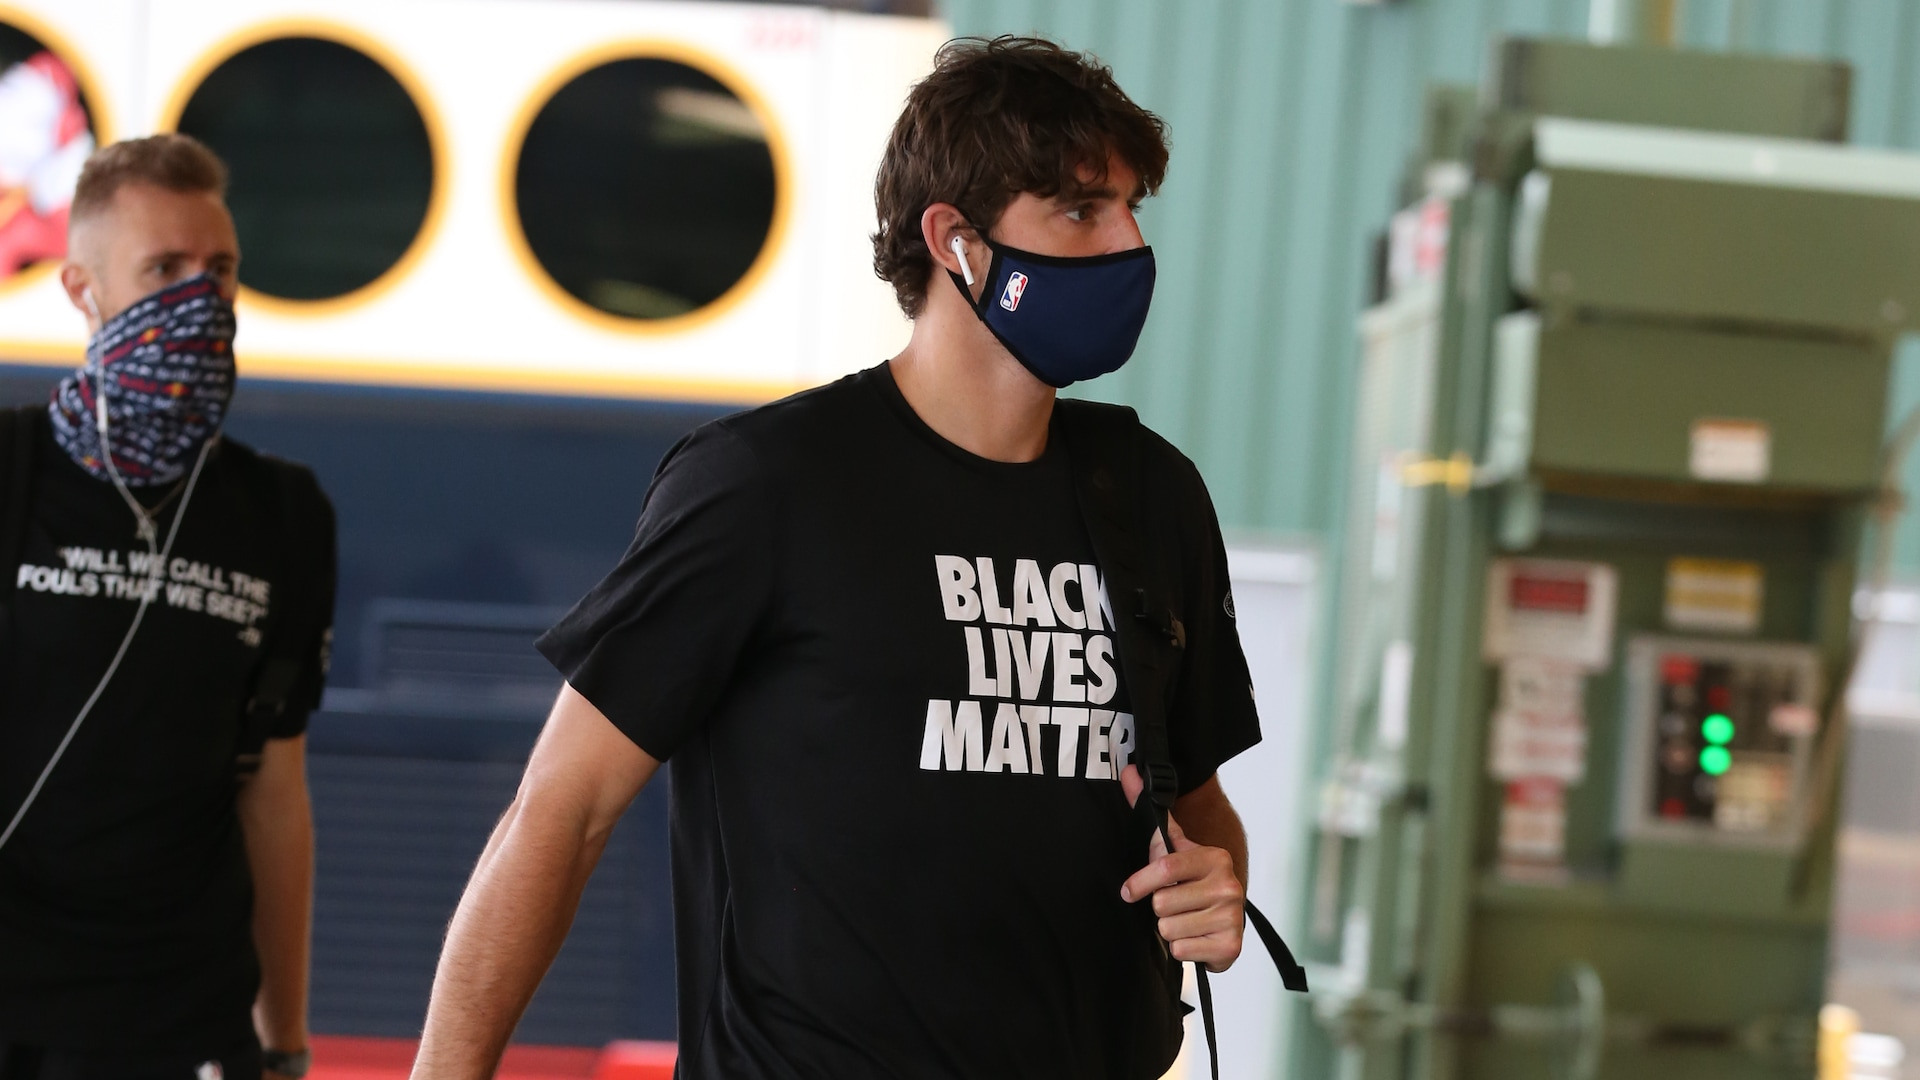 Nets' Joe Harris leaves campus for non-medical personal matter